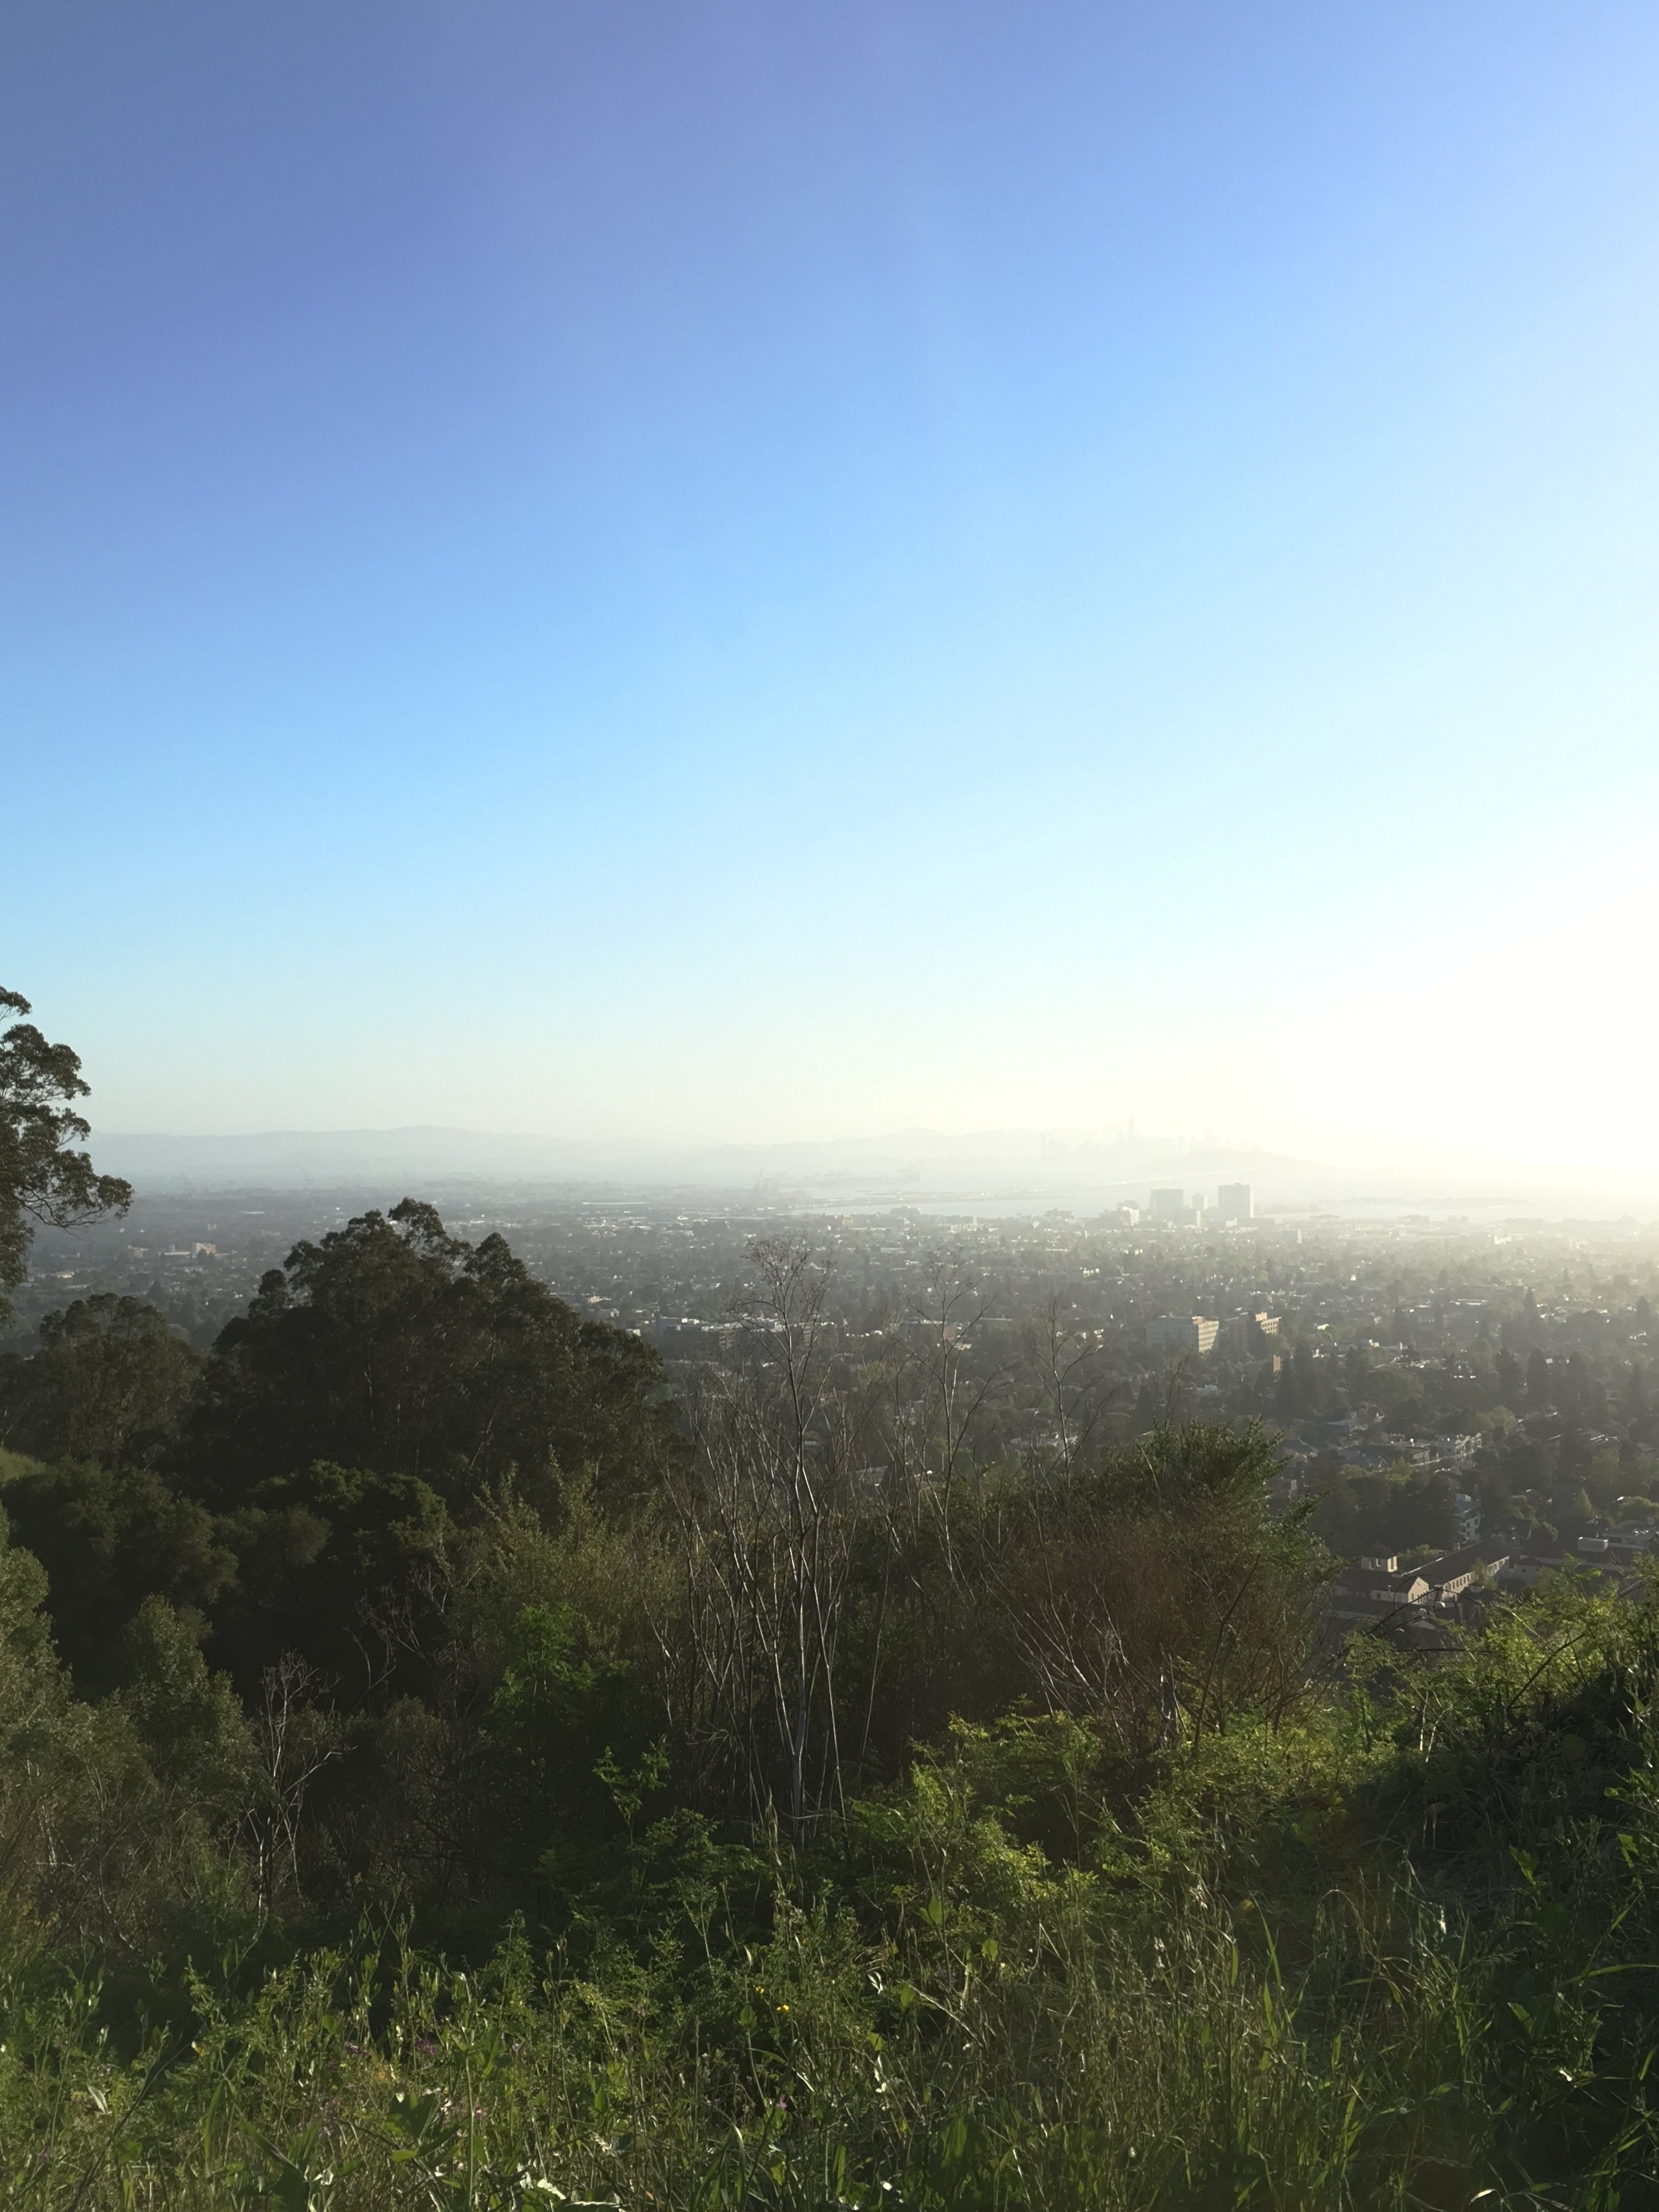 View YESTERDAY, atop Berkeley Hills. San Francisco out there, thru the light fog. Sun setting. It took 5,000 steps/50+ flight of stairs to get to this vista.